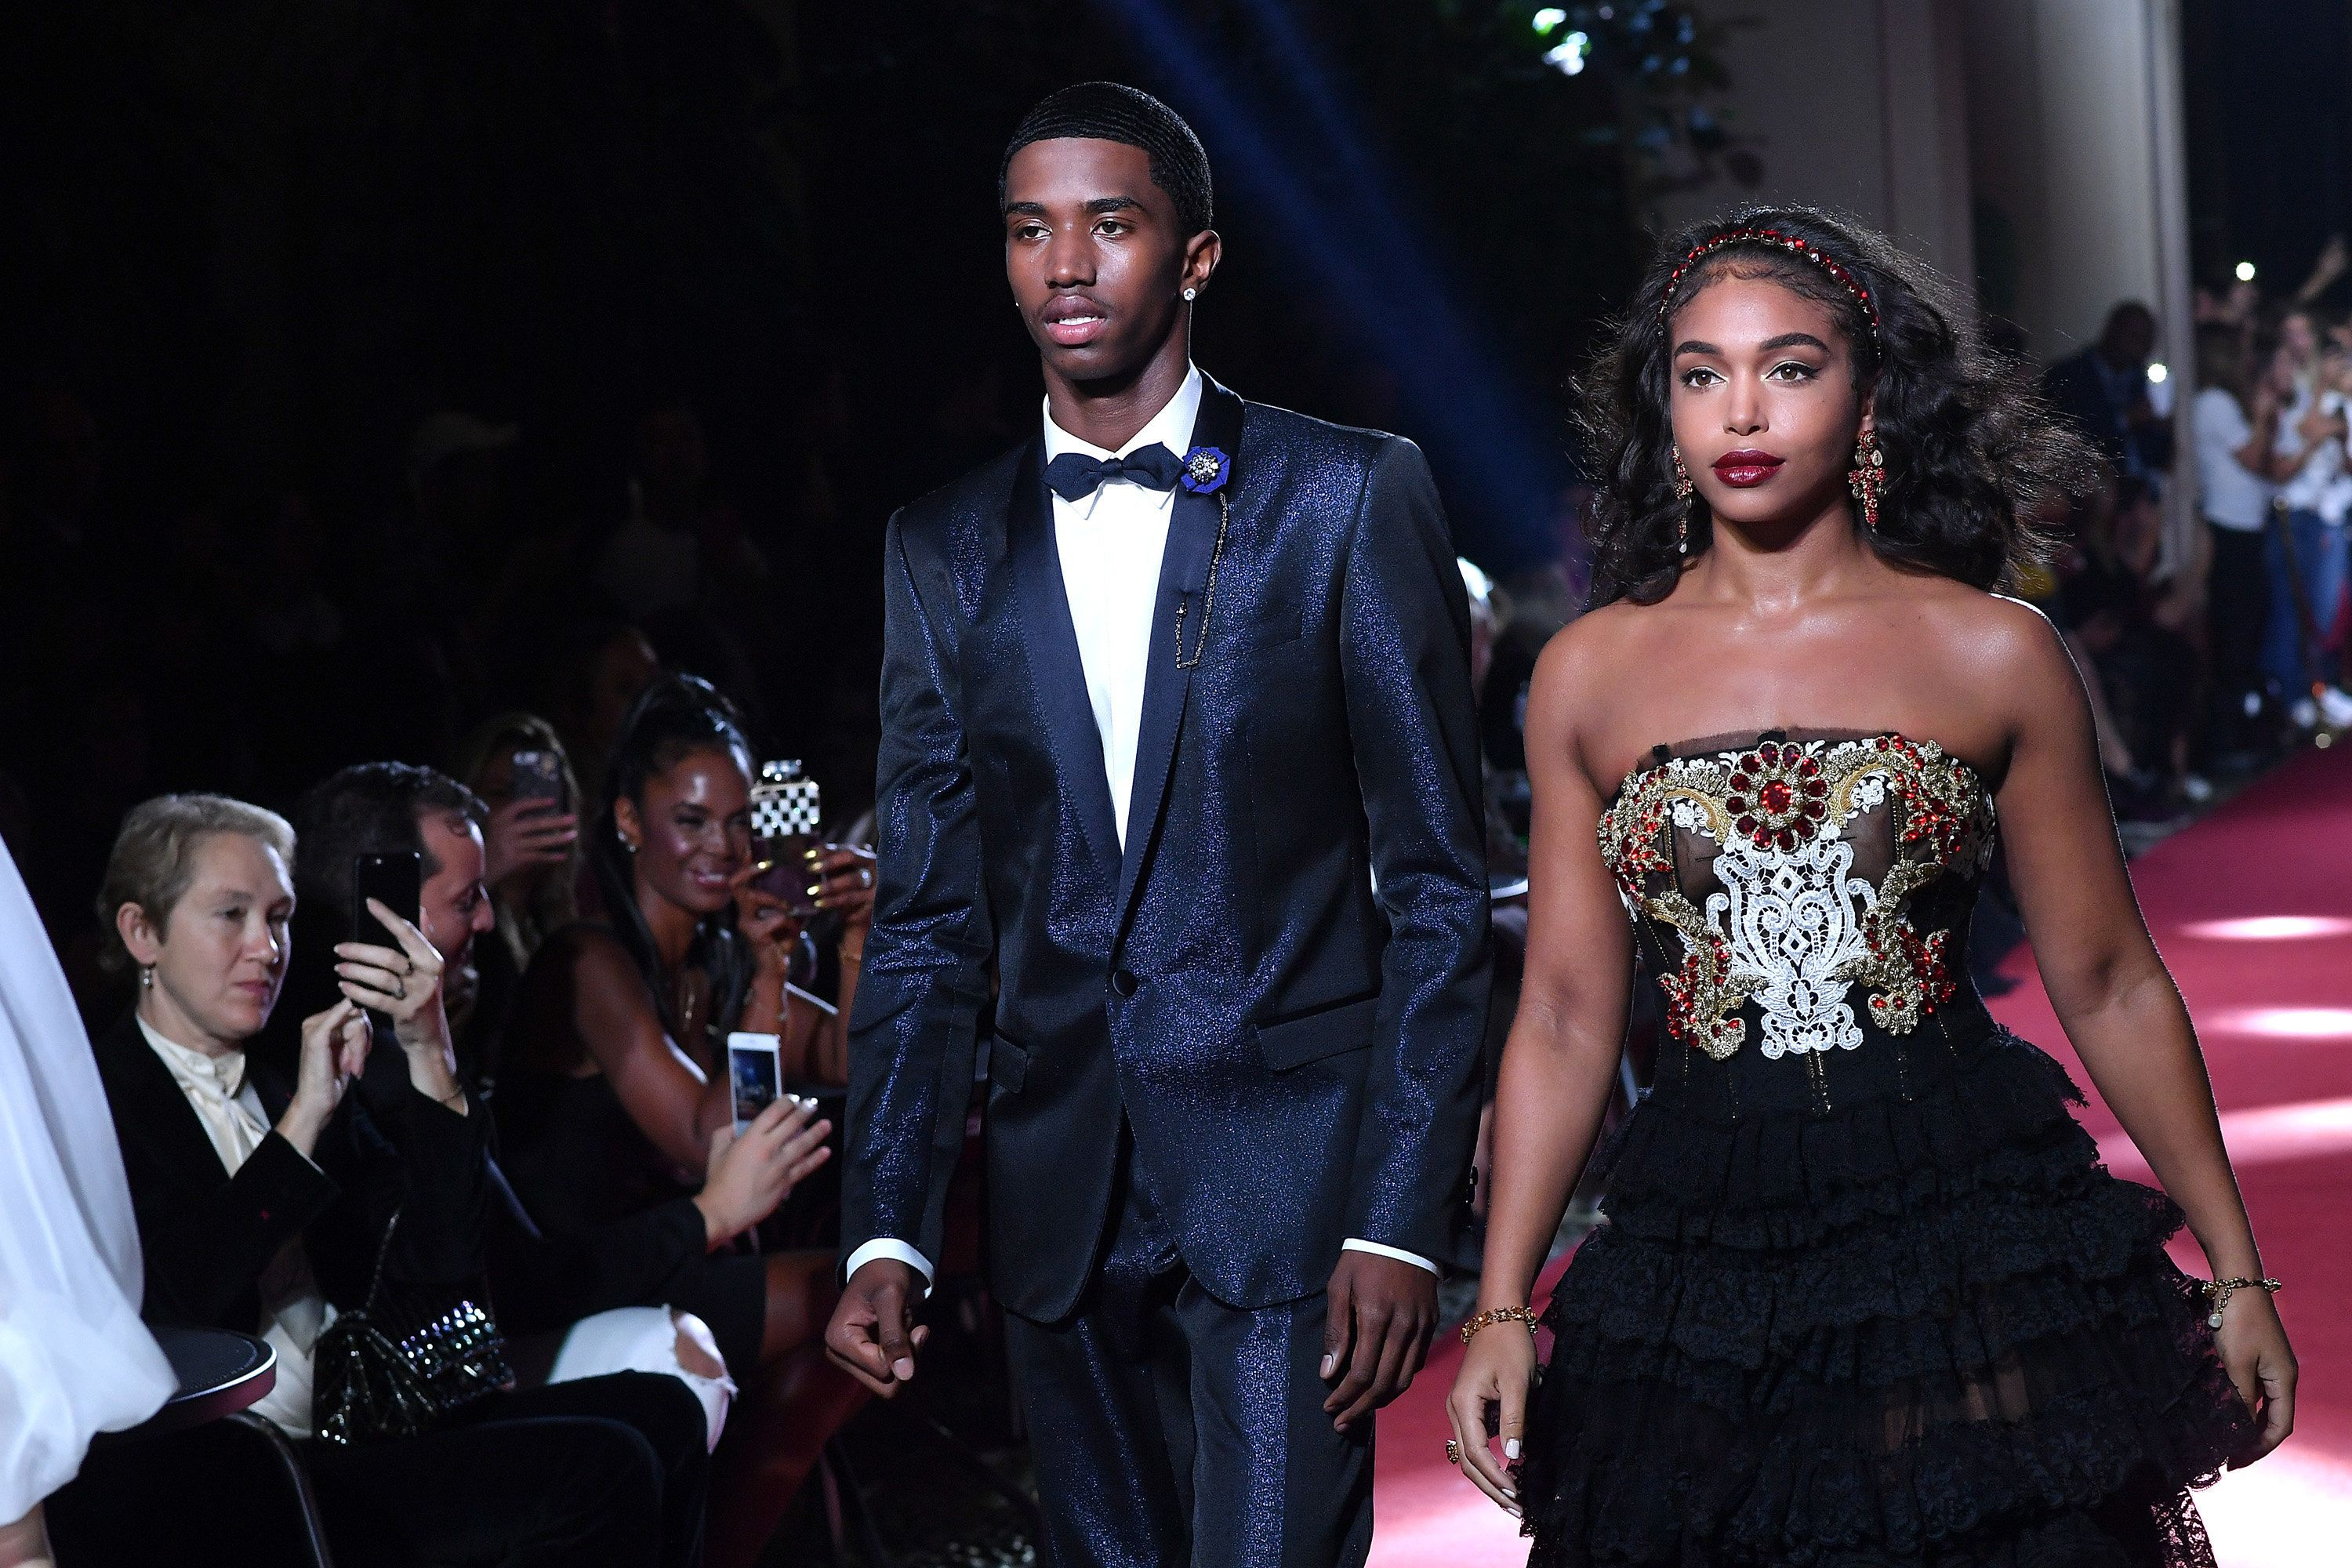 MILAN, ITALY - SEPTEMBER 23:  Christian Combs and Lori Harvey  walk the runway at the Dolce & Gabbana secret show during Milan Fashion Week Spring/Summer 2018 at Bar Martini on September 23, 2017 in Milan, Italy.  (Photo by Jacopo Raule/Getty Images)